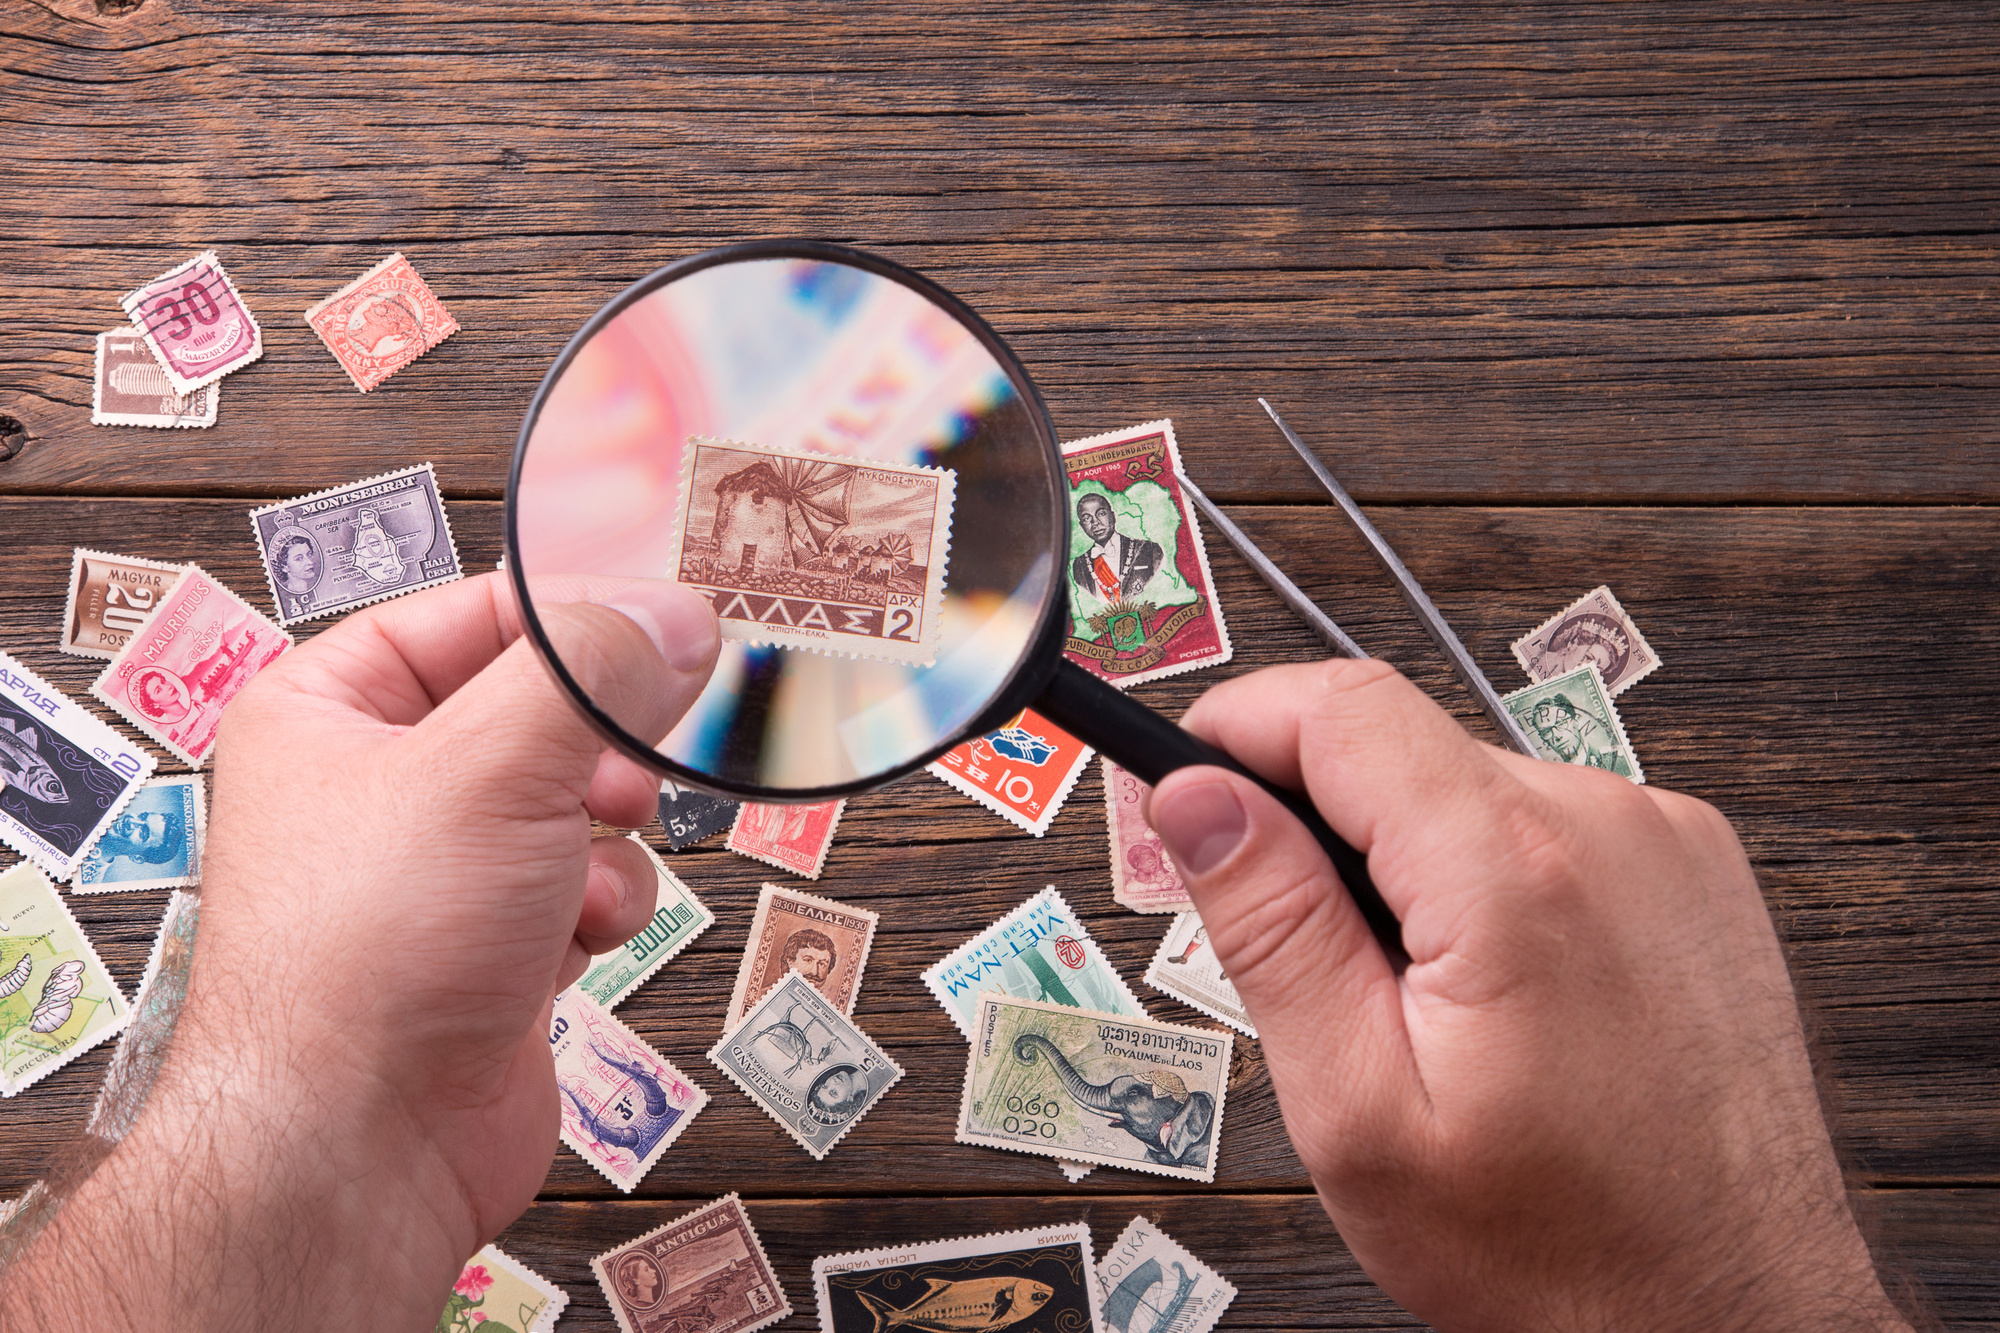 8 cool things to collect that are actually worth the investment